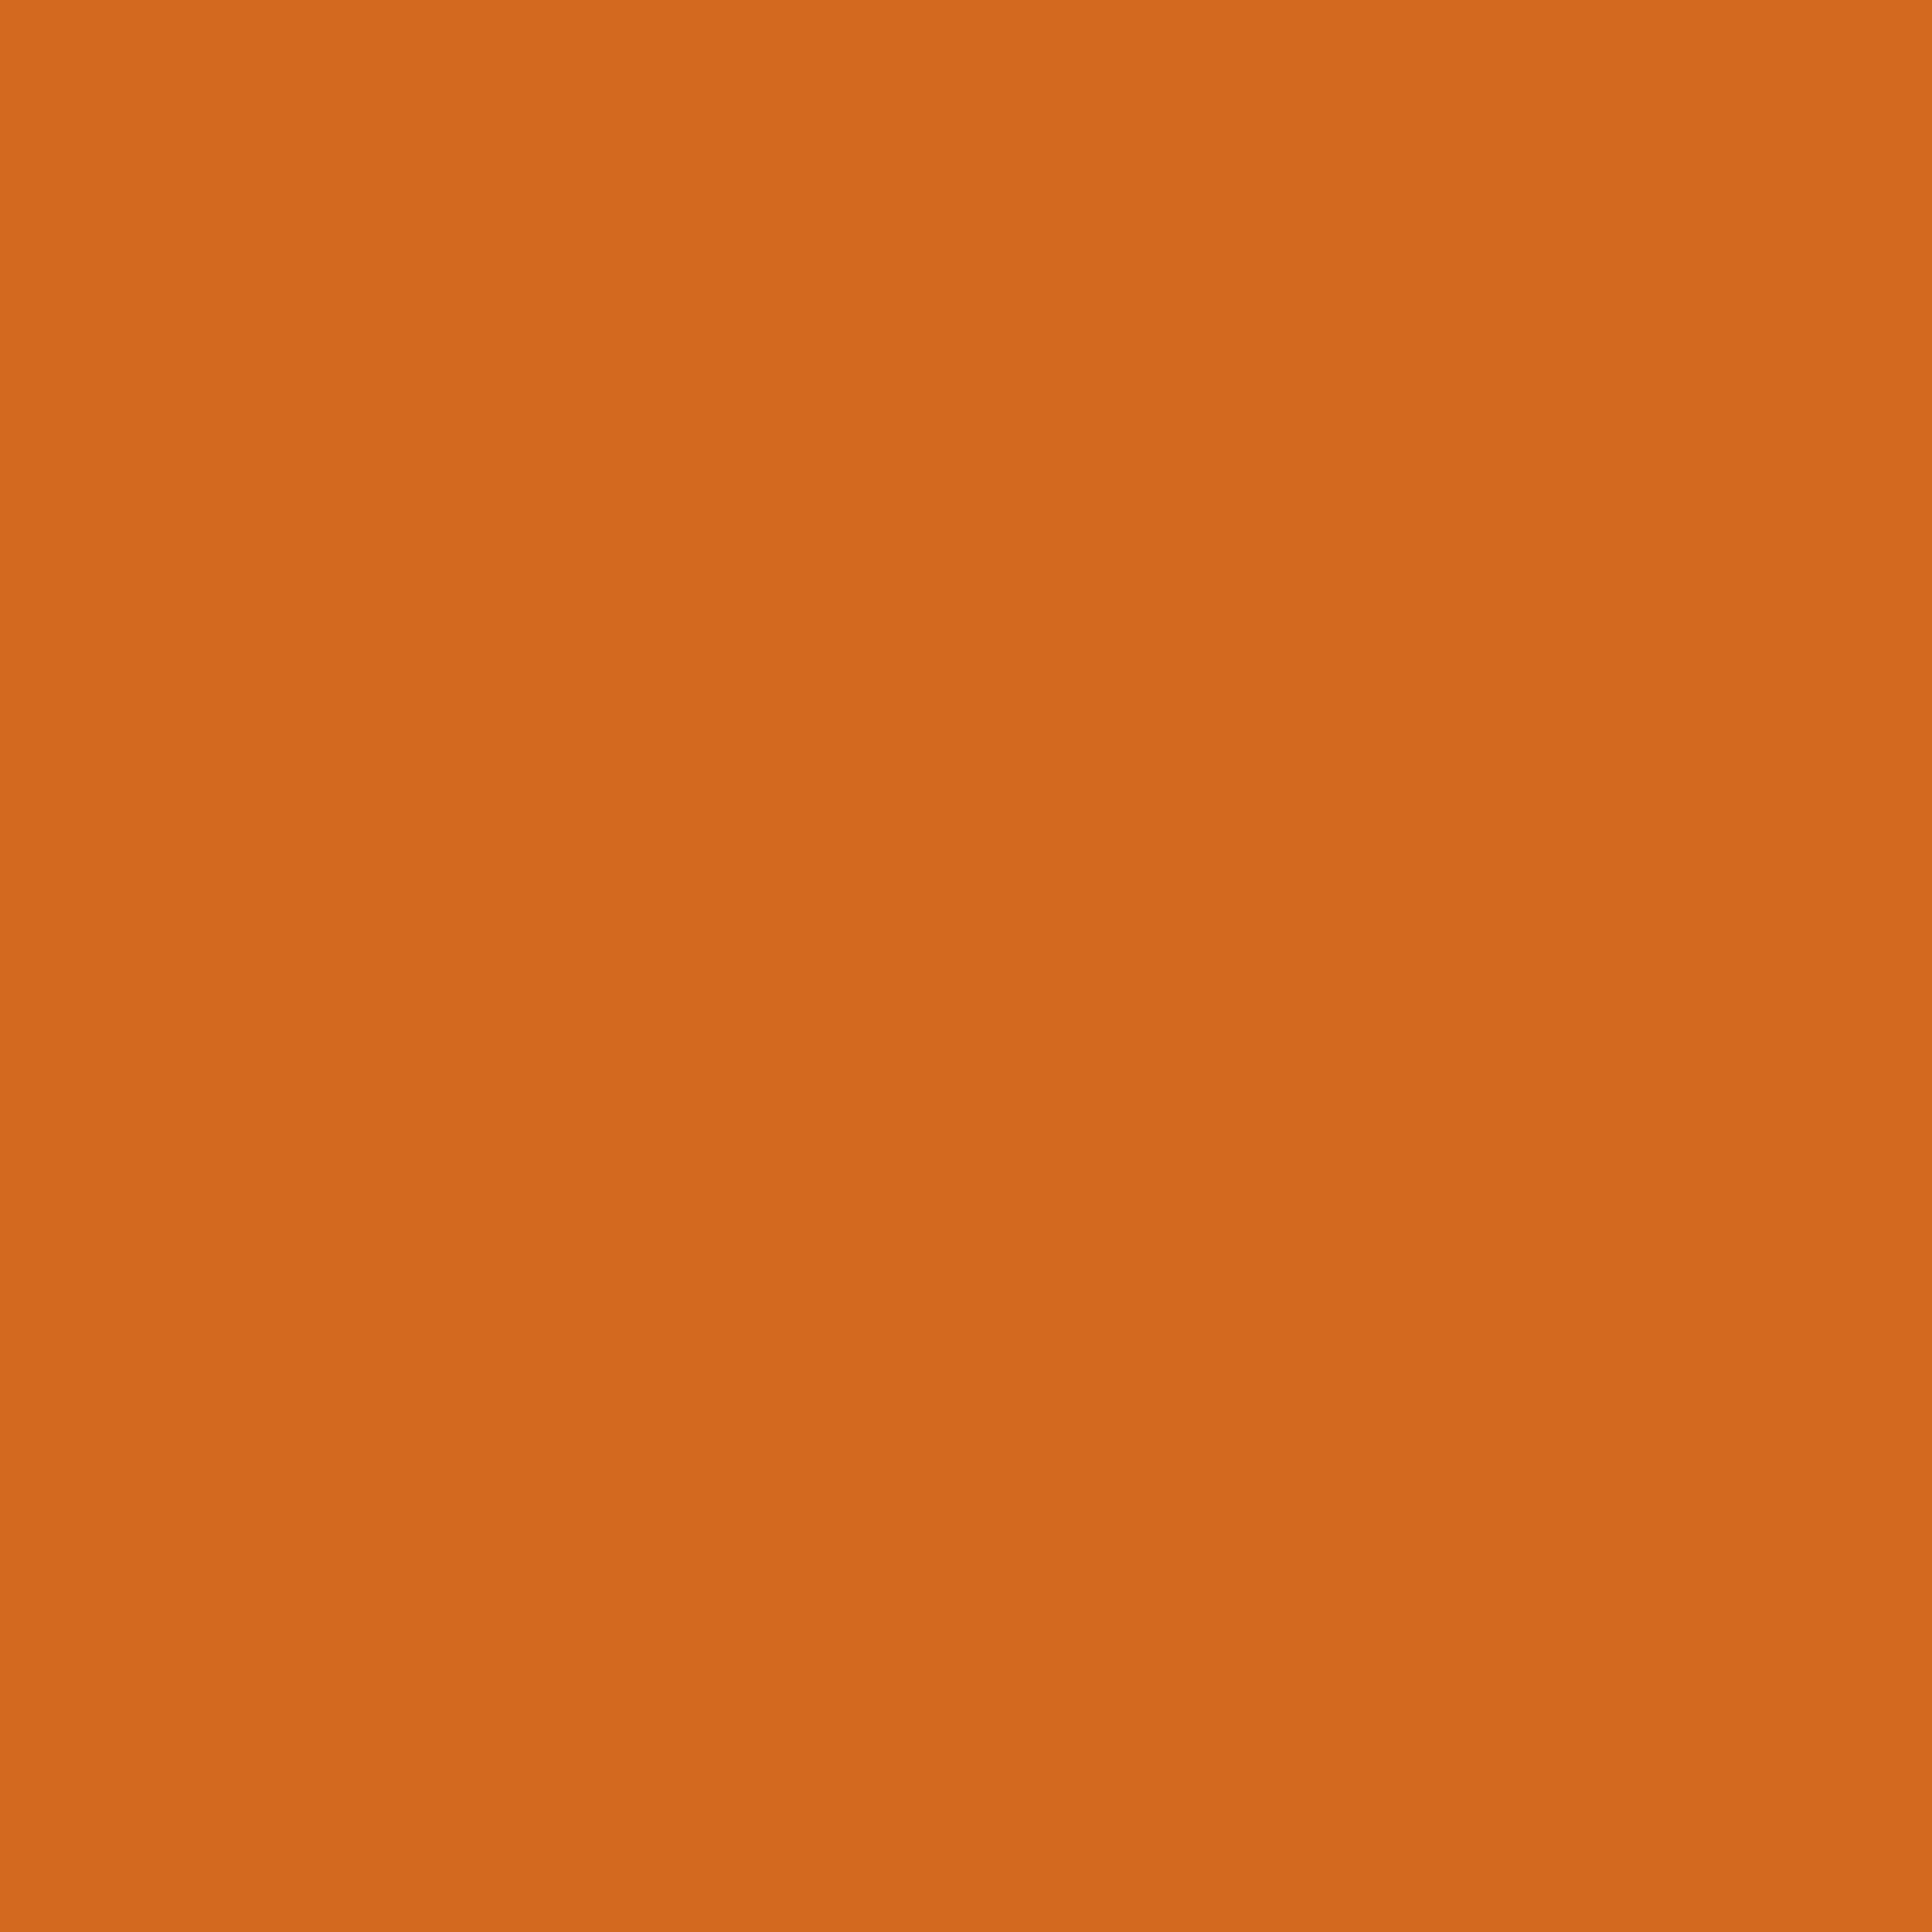 2732x2732 Cinnamon Solid Color Background